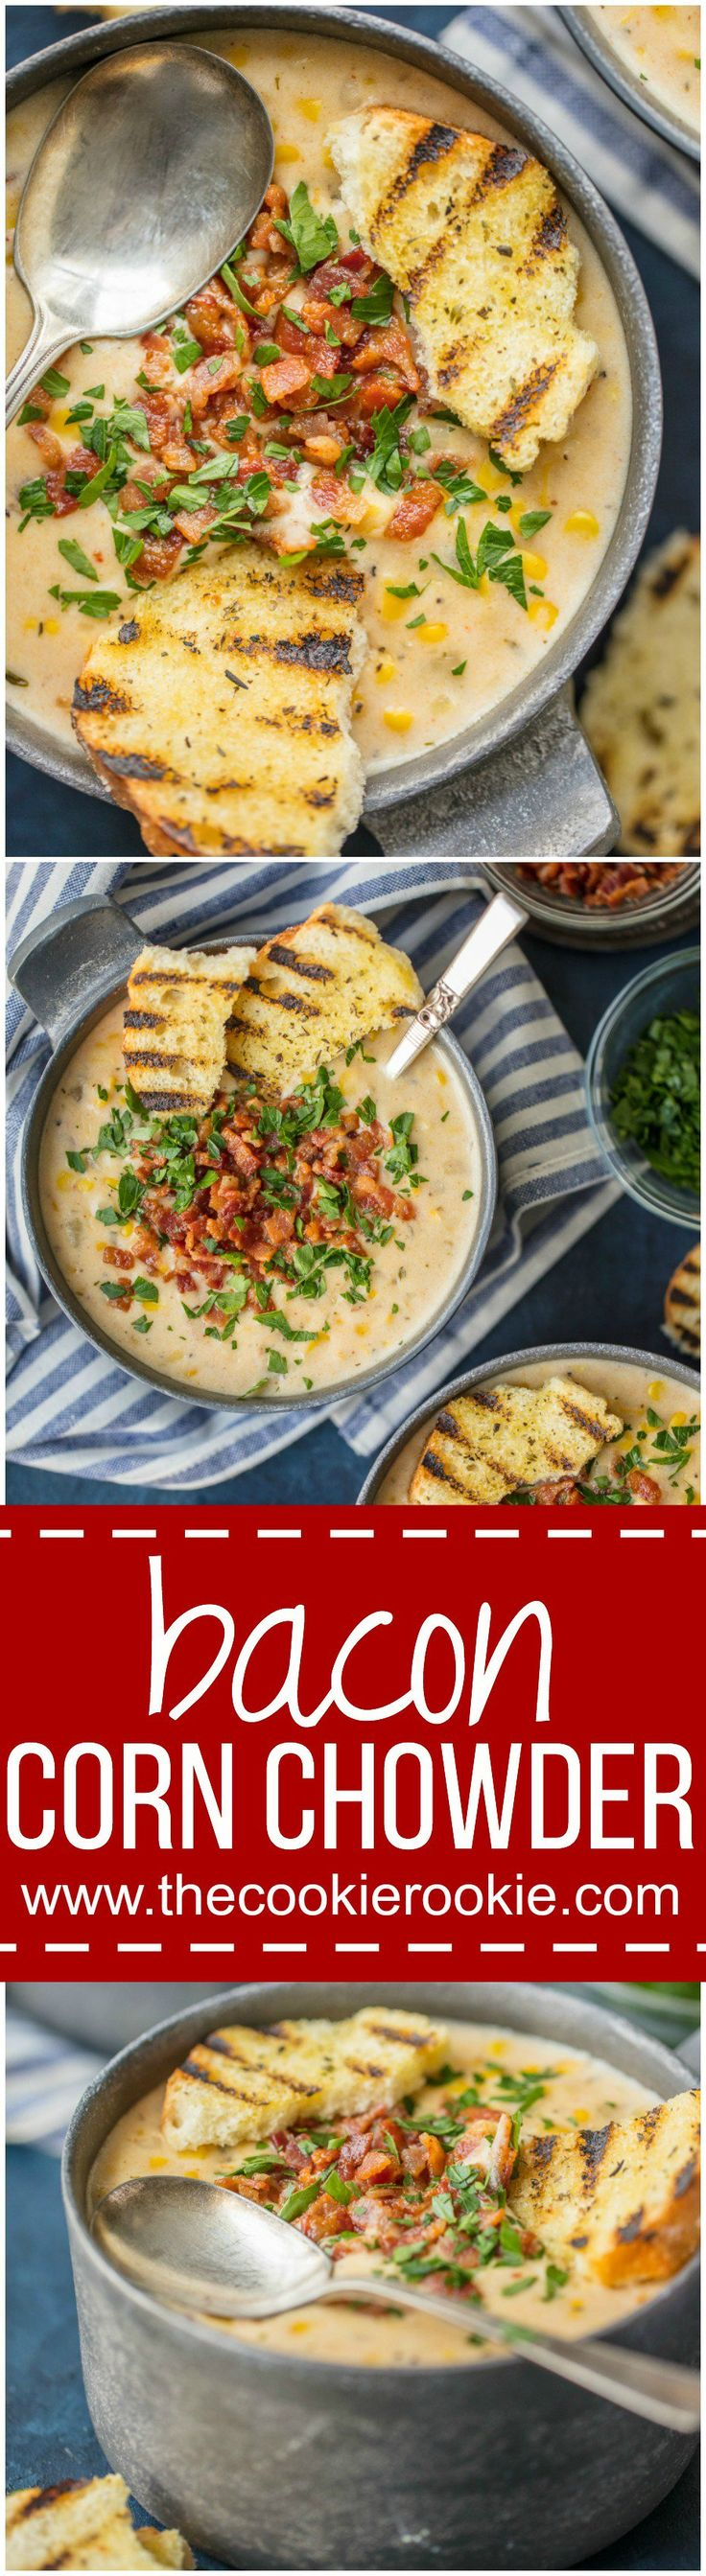 BACON CORN CHOWDER is a must make for Winter! This delicious sweet chowder loaded with potatoes, corn, bacon, and so much flavor is the ultimate comfort food.